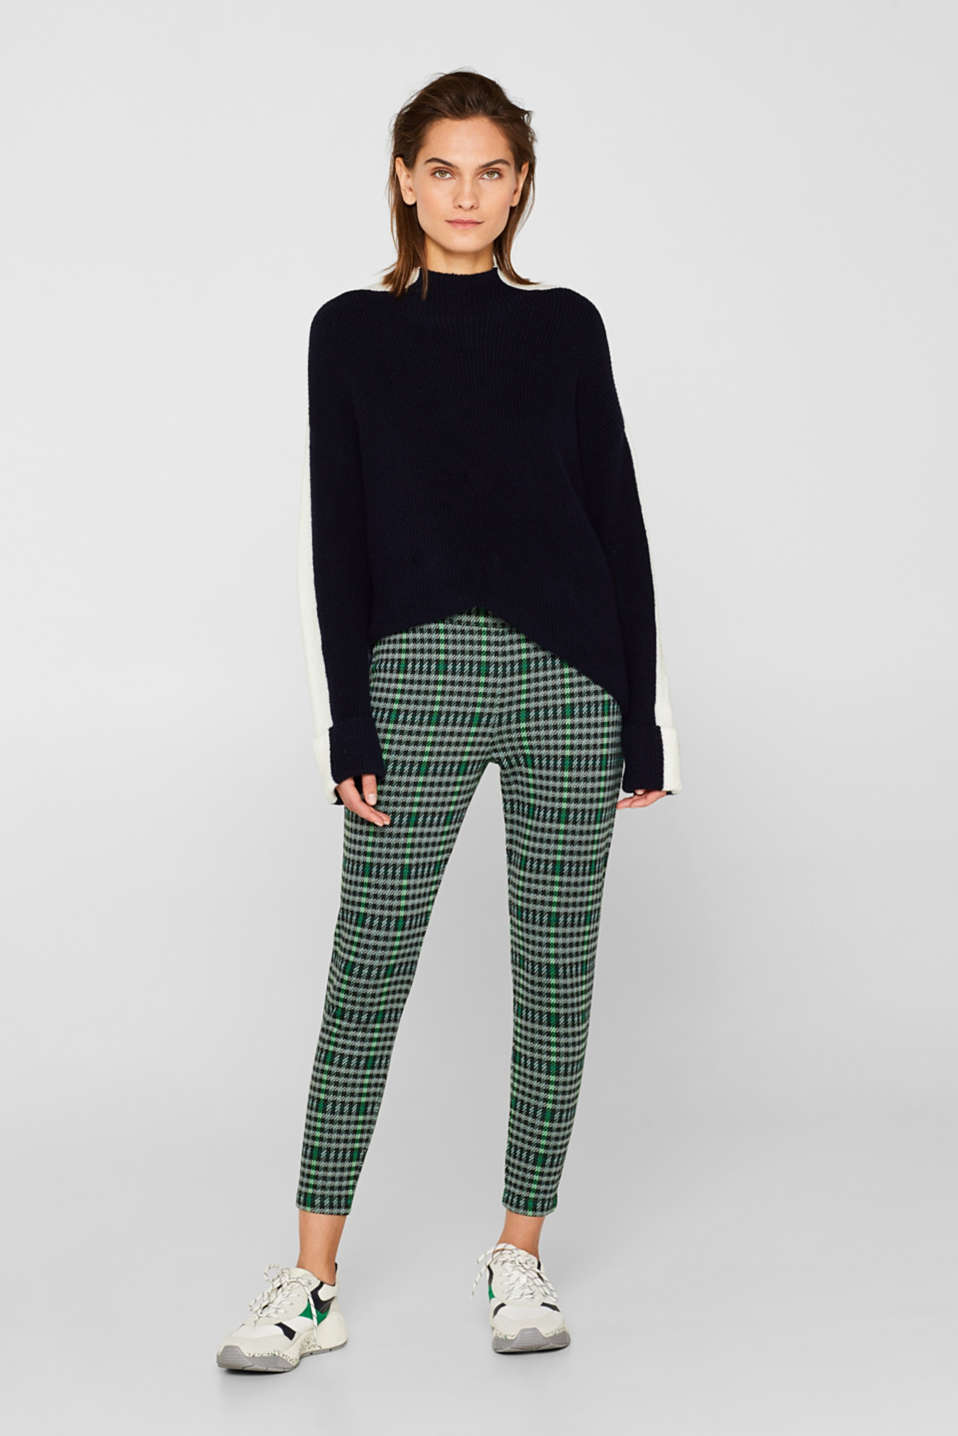 Ankle-length leggings in a checked look